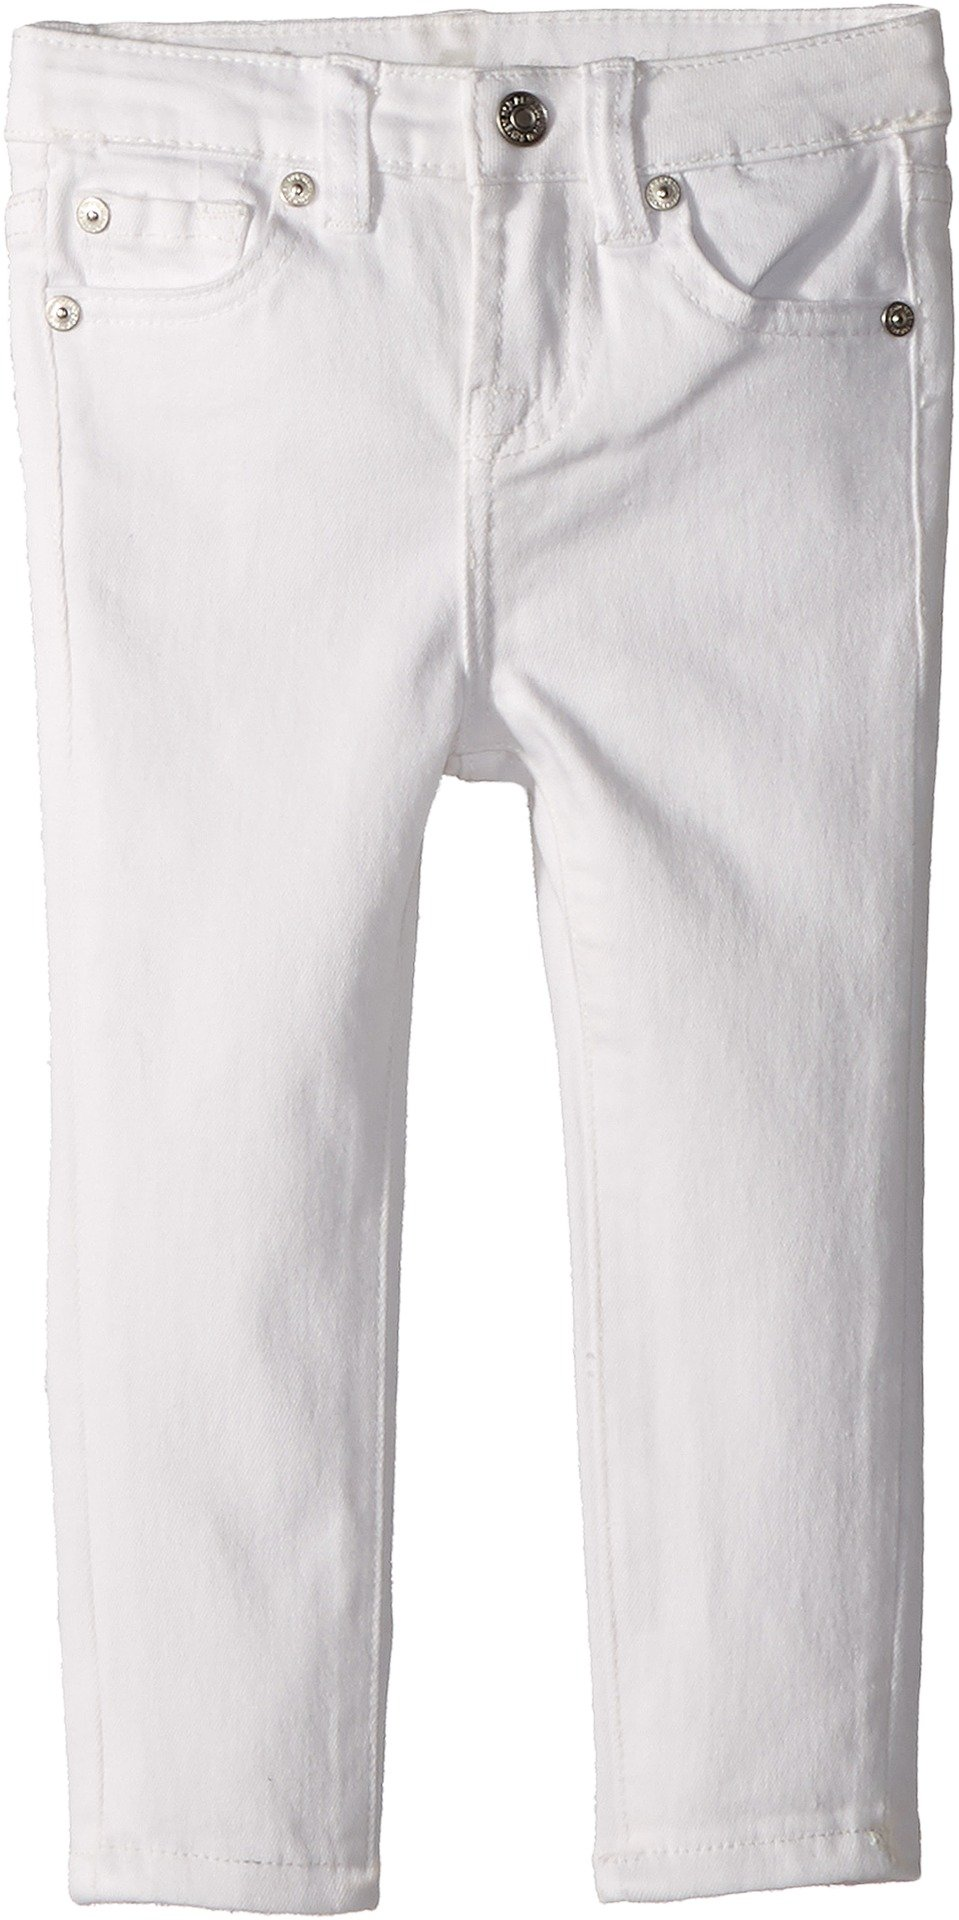 7 For All Mankind Kids Baby Girl's The Skinny Jeans in Clean White (Toddler) Clean White 3T Toddler